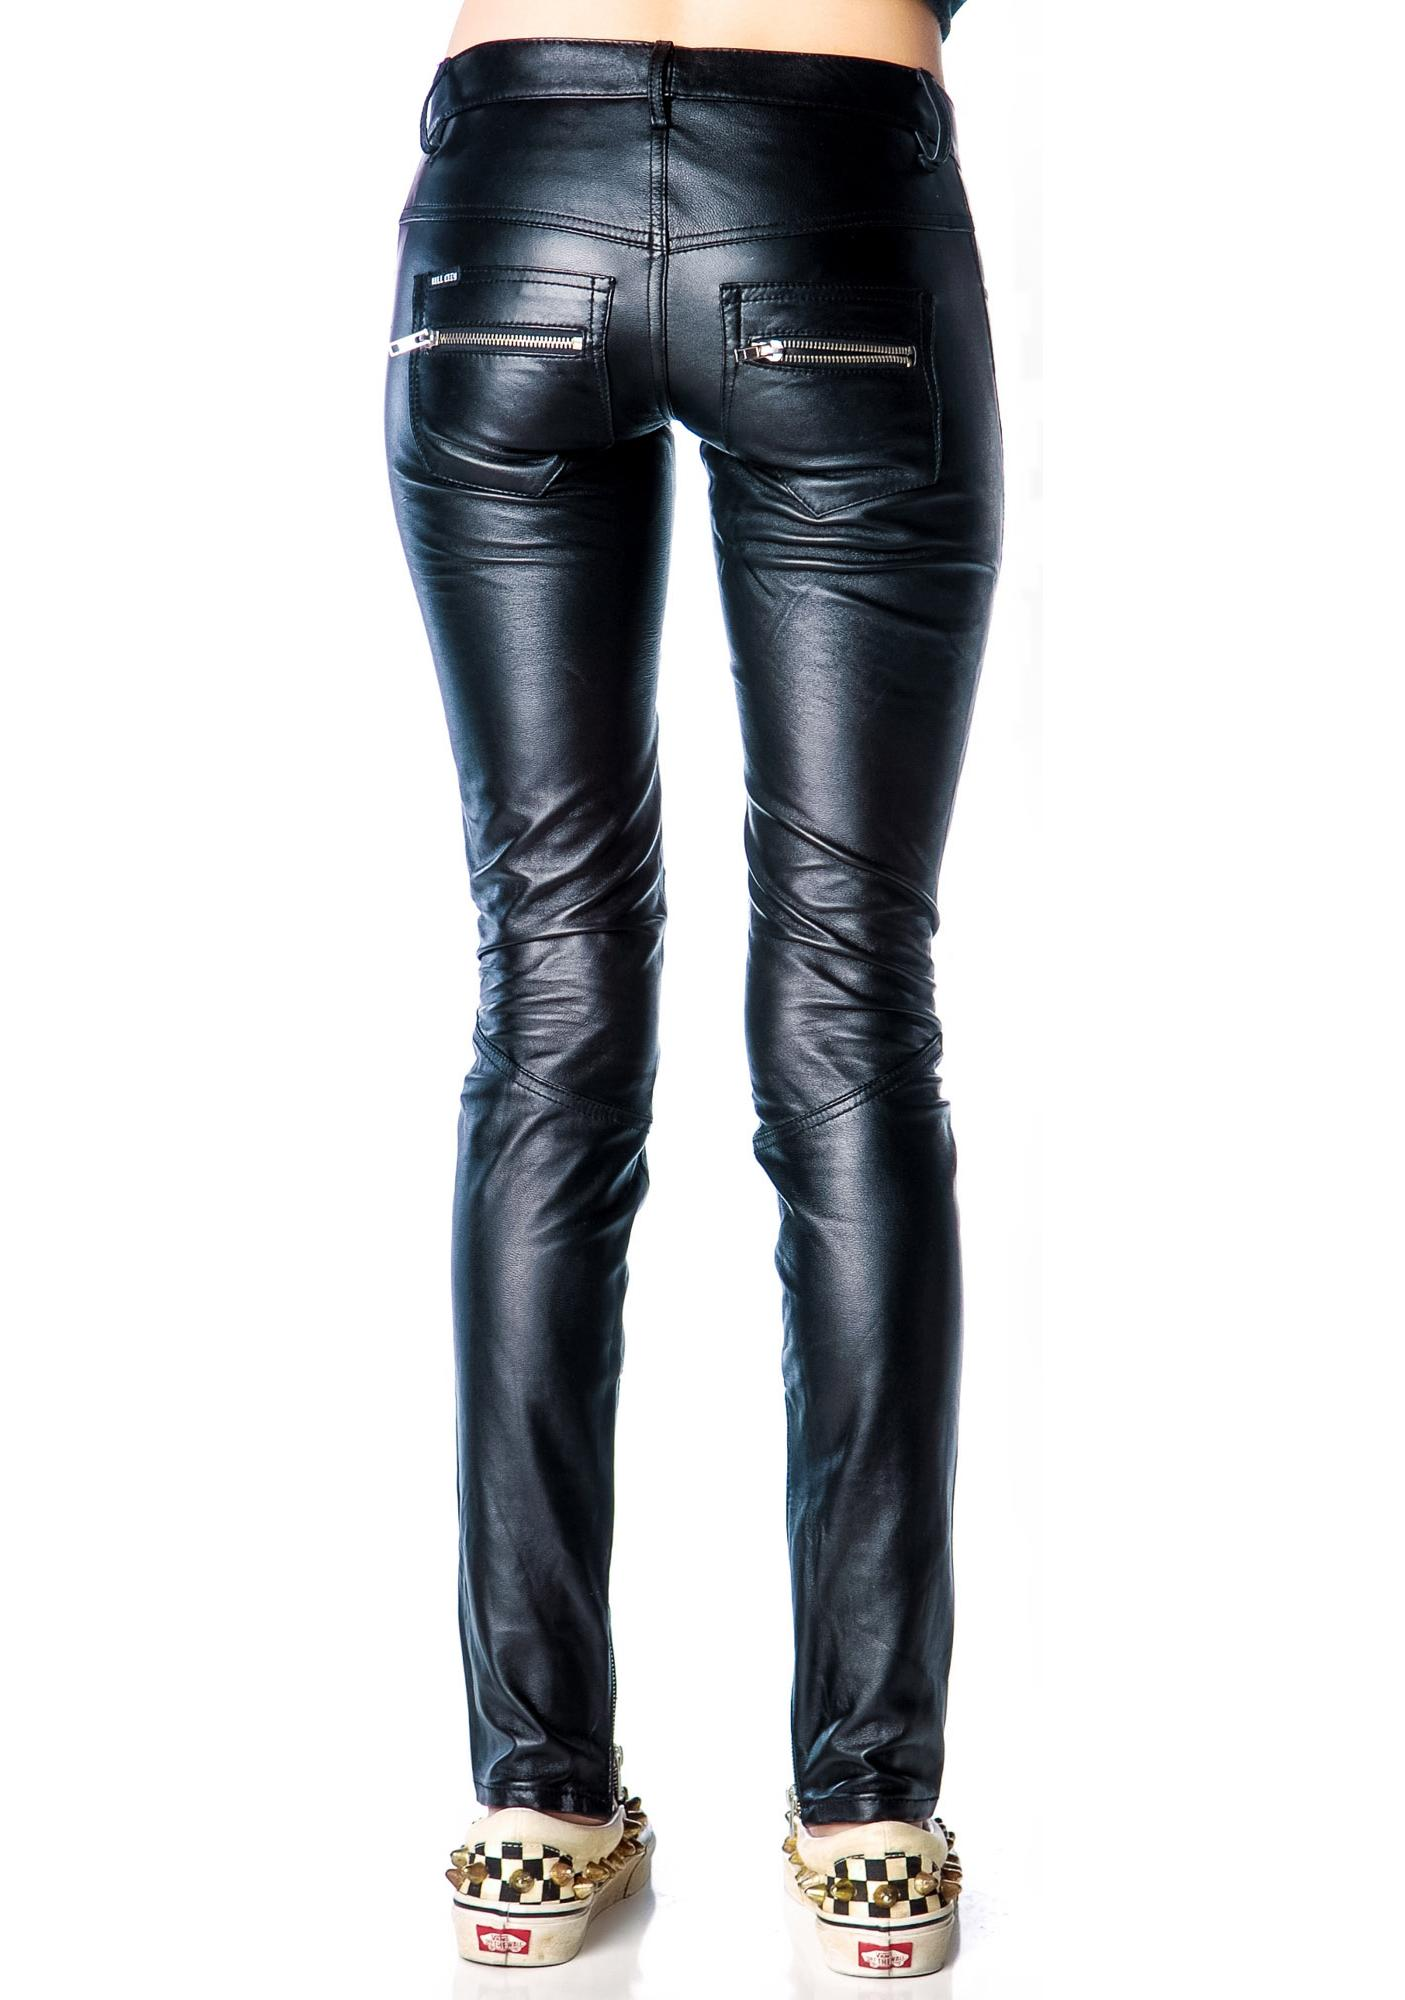 Kill City Junkie Lace Up Fly Leather Pants